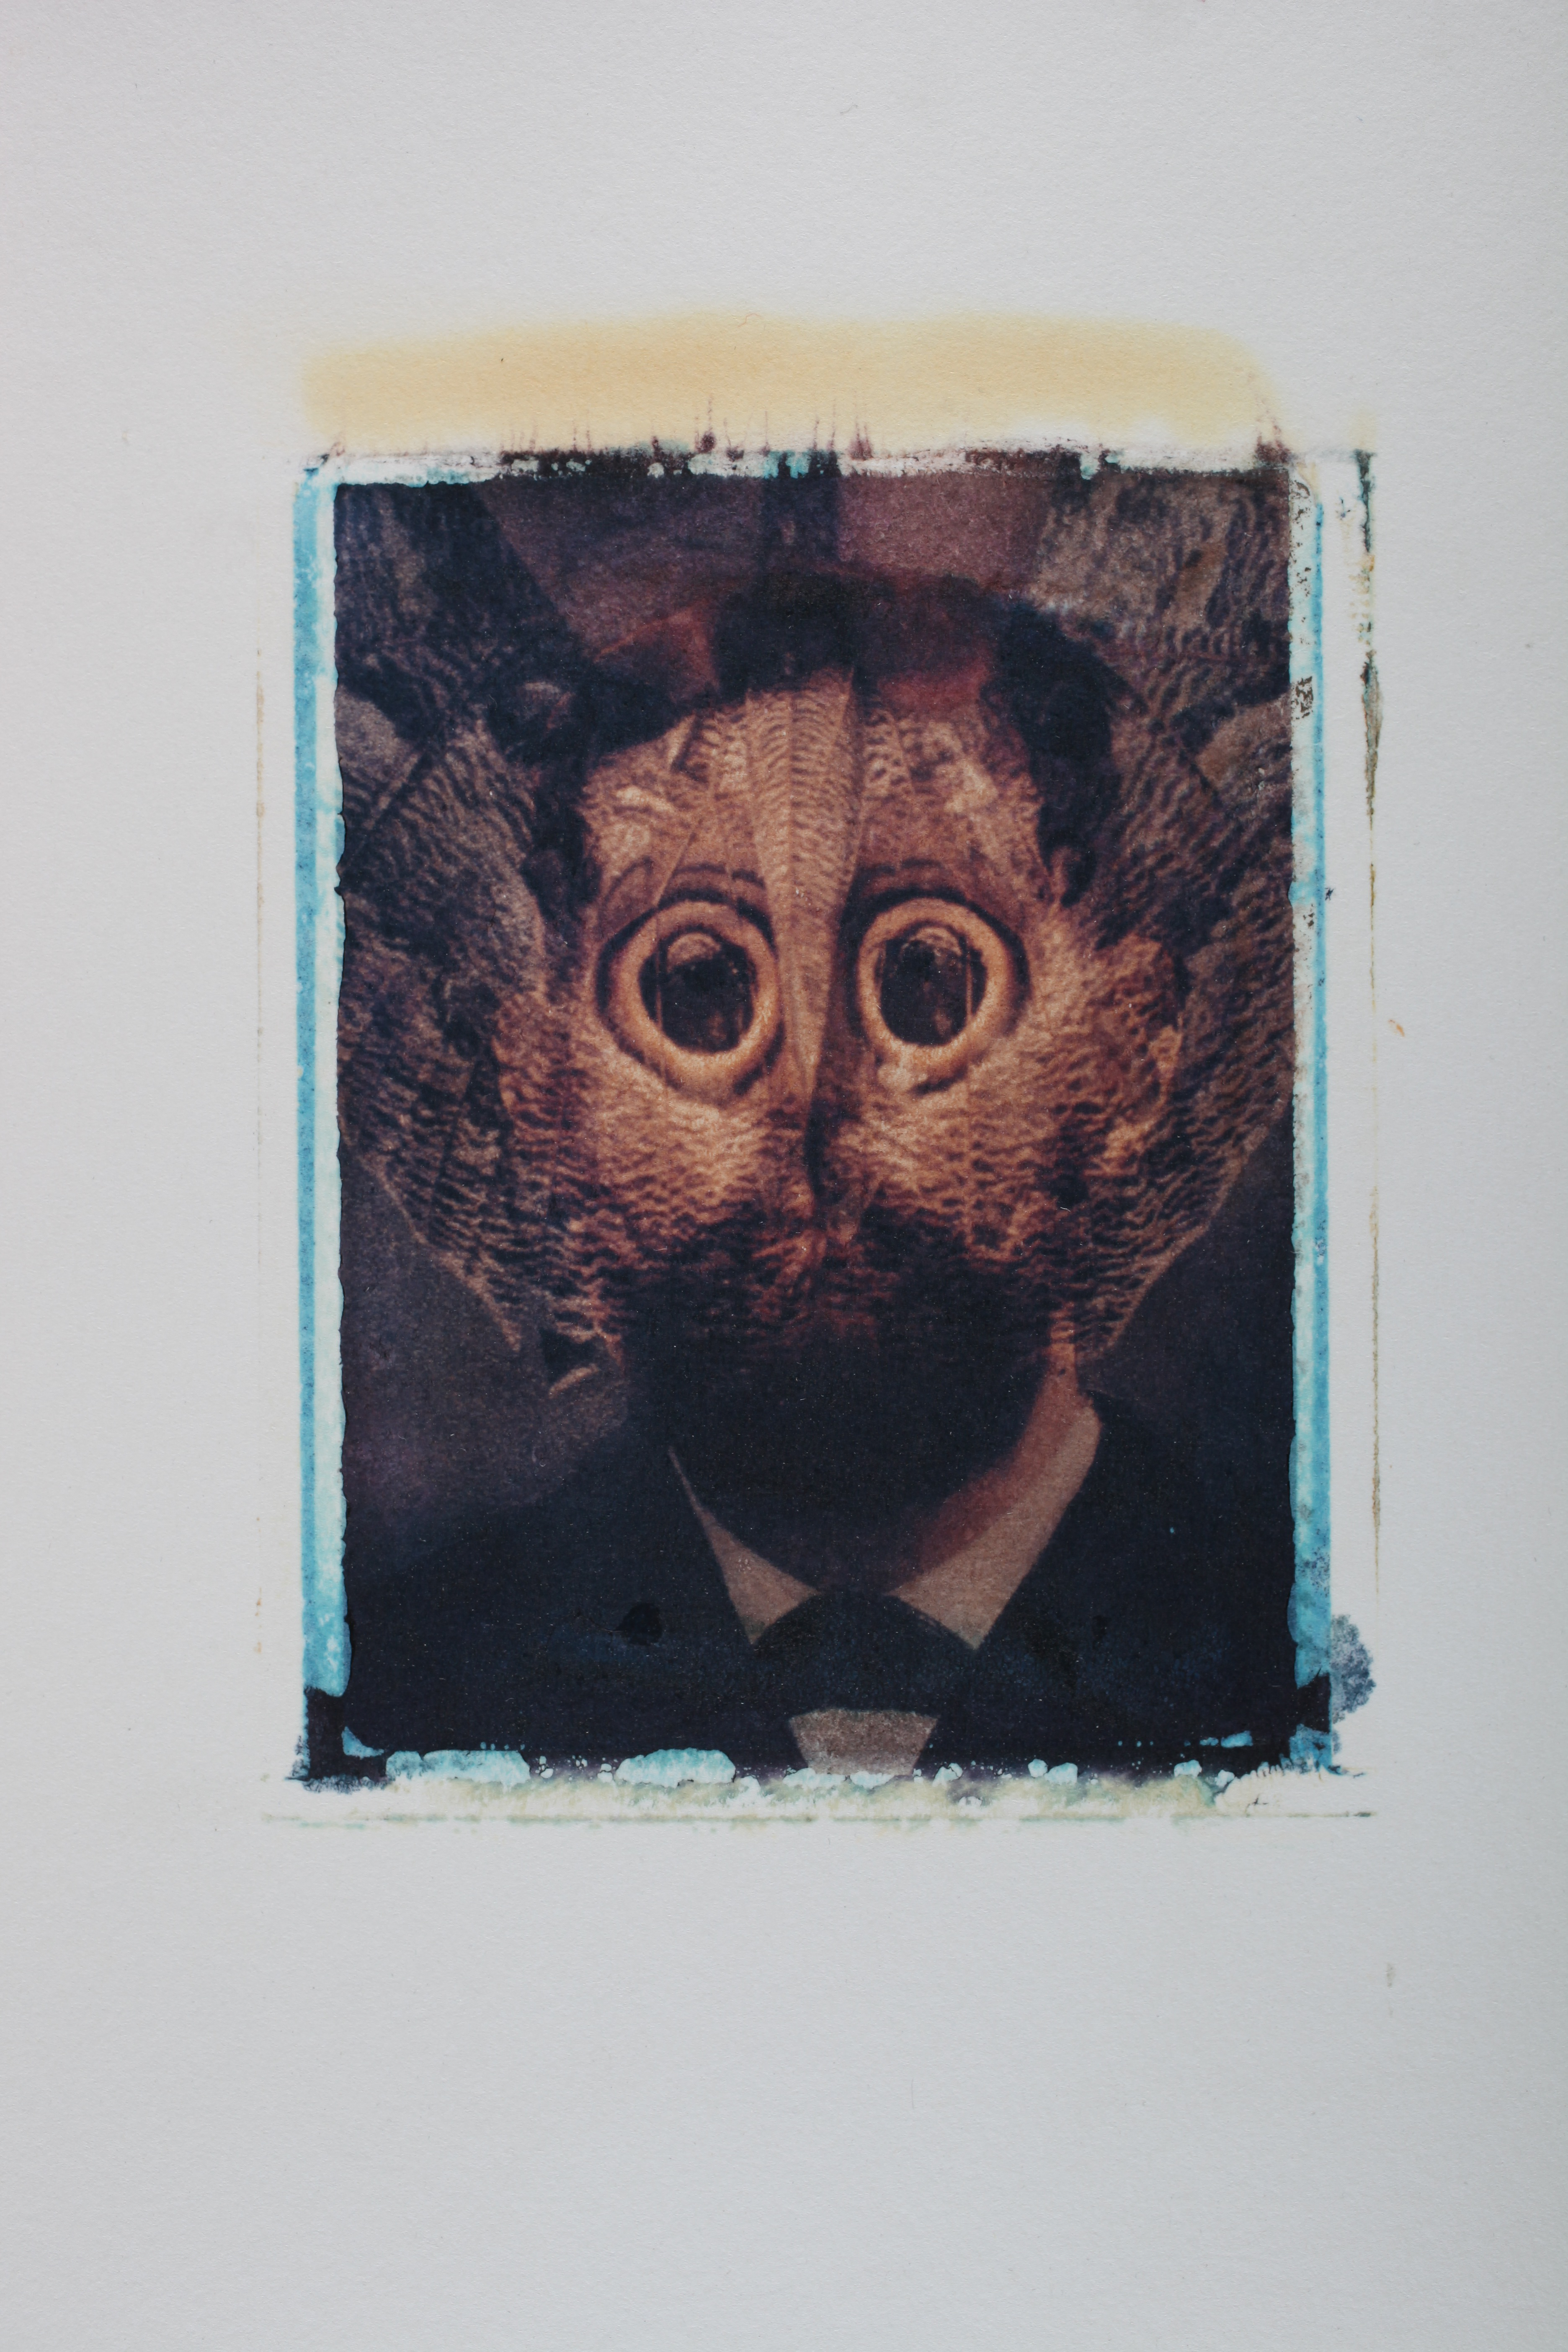 Multi-layered Polaroid image by Robert Seydel with man's bearded face and moth